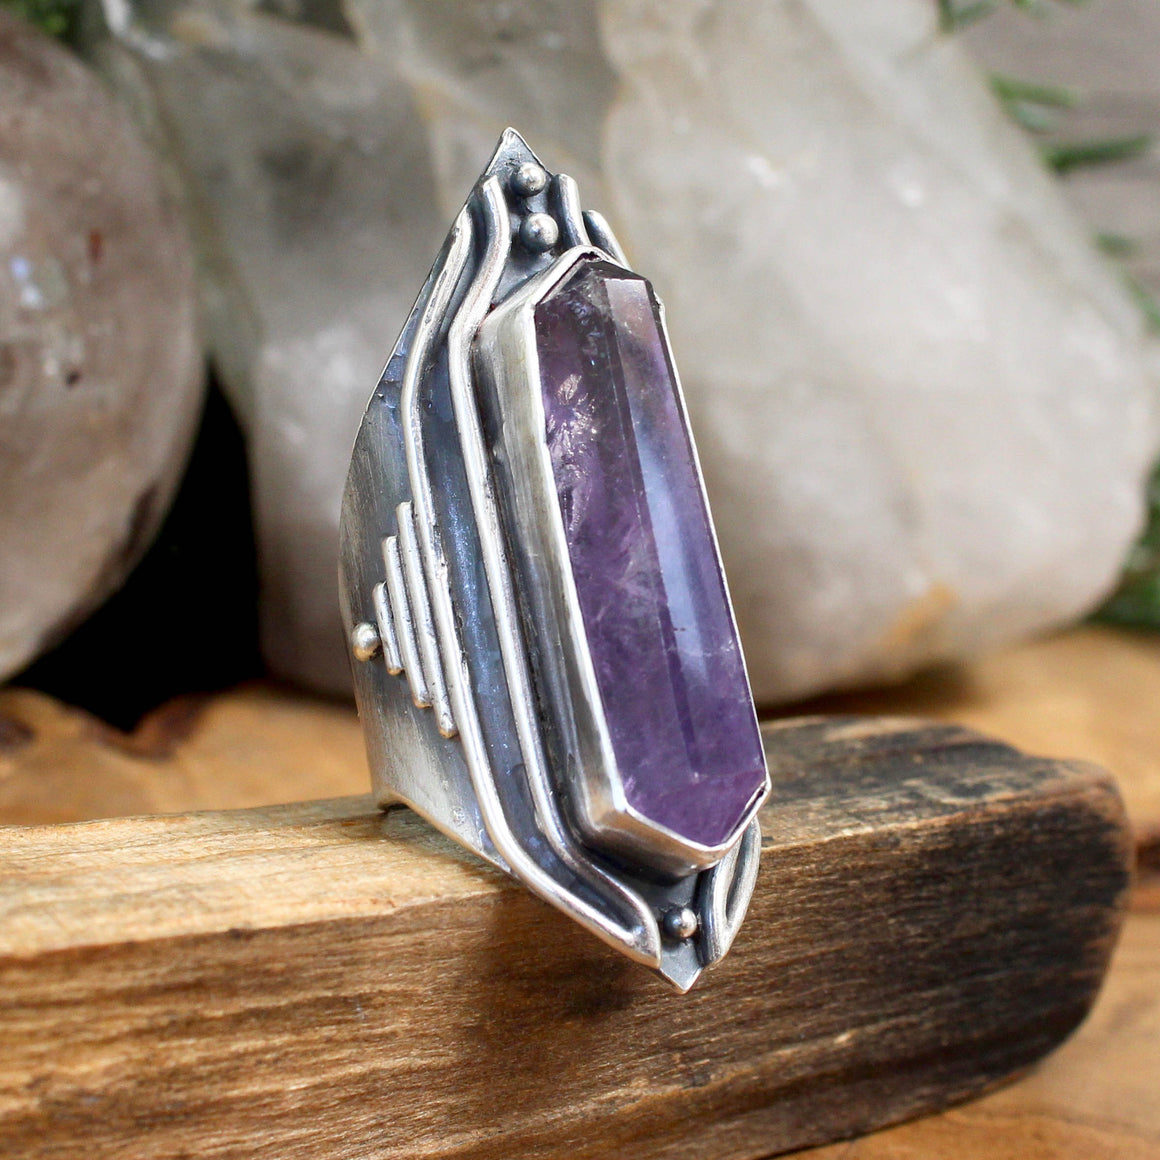 Amplifier Ring // Amethyst- Size 9 - acid-queen-jewelry, [product_type] - acid-queen-jewelry, Acid Queen Jewelry - acid-queen-jewelry,  Acid Queen Jewelry - acid-queen-jewelry